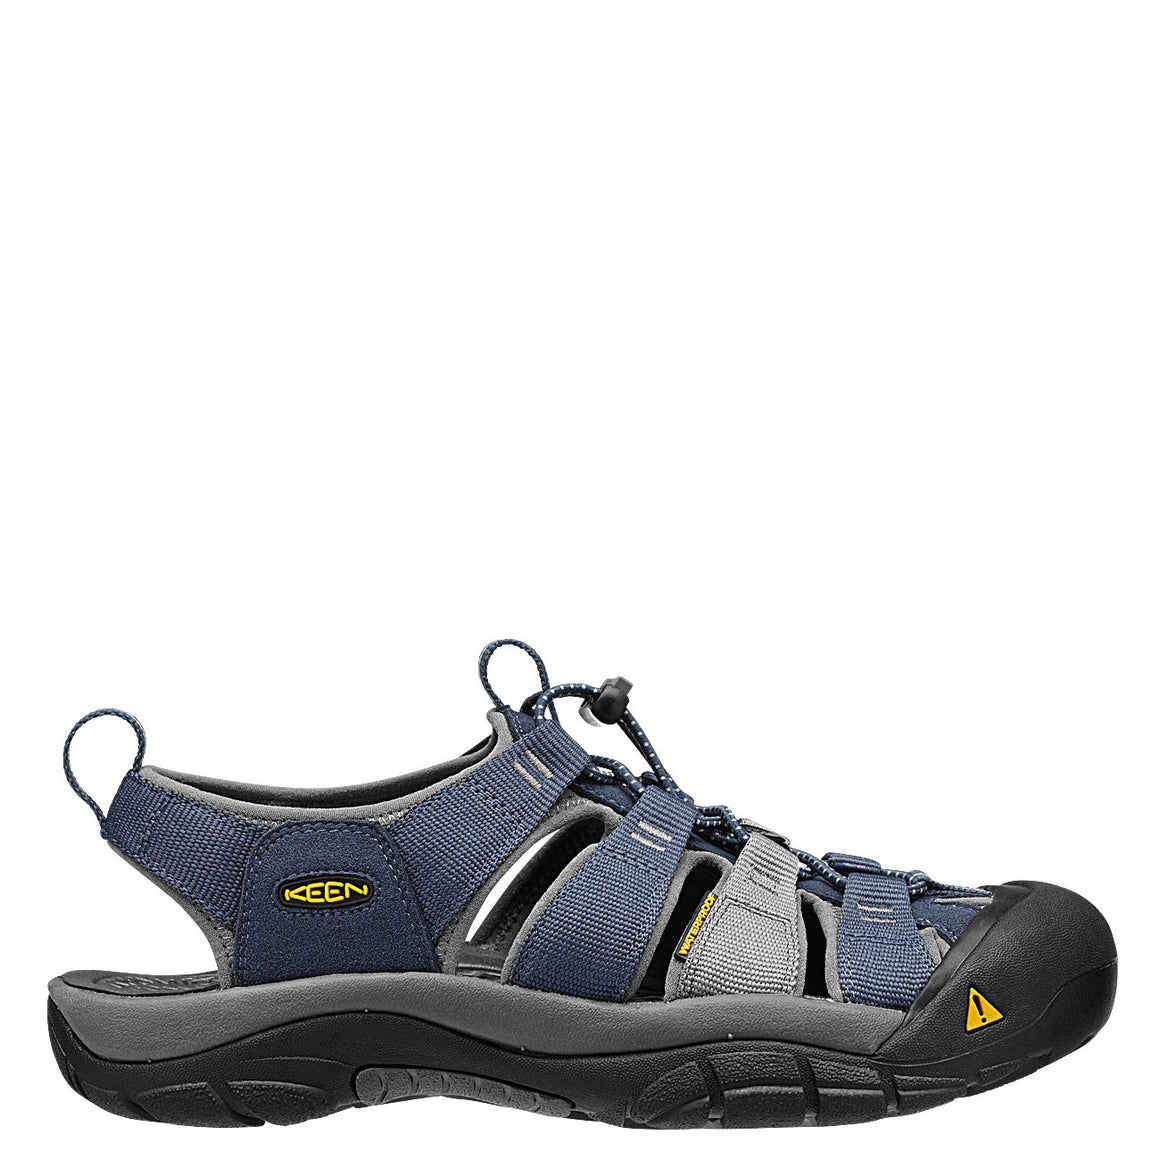 7e3cf08fc443 Keen Men s Newport H2 Sandal - Midnight Navy Neutral Gray 1012206 -  ShoeShackOnline